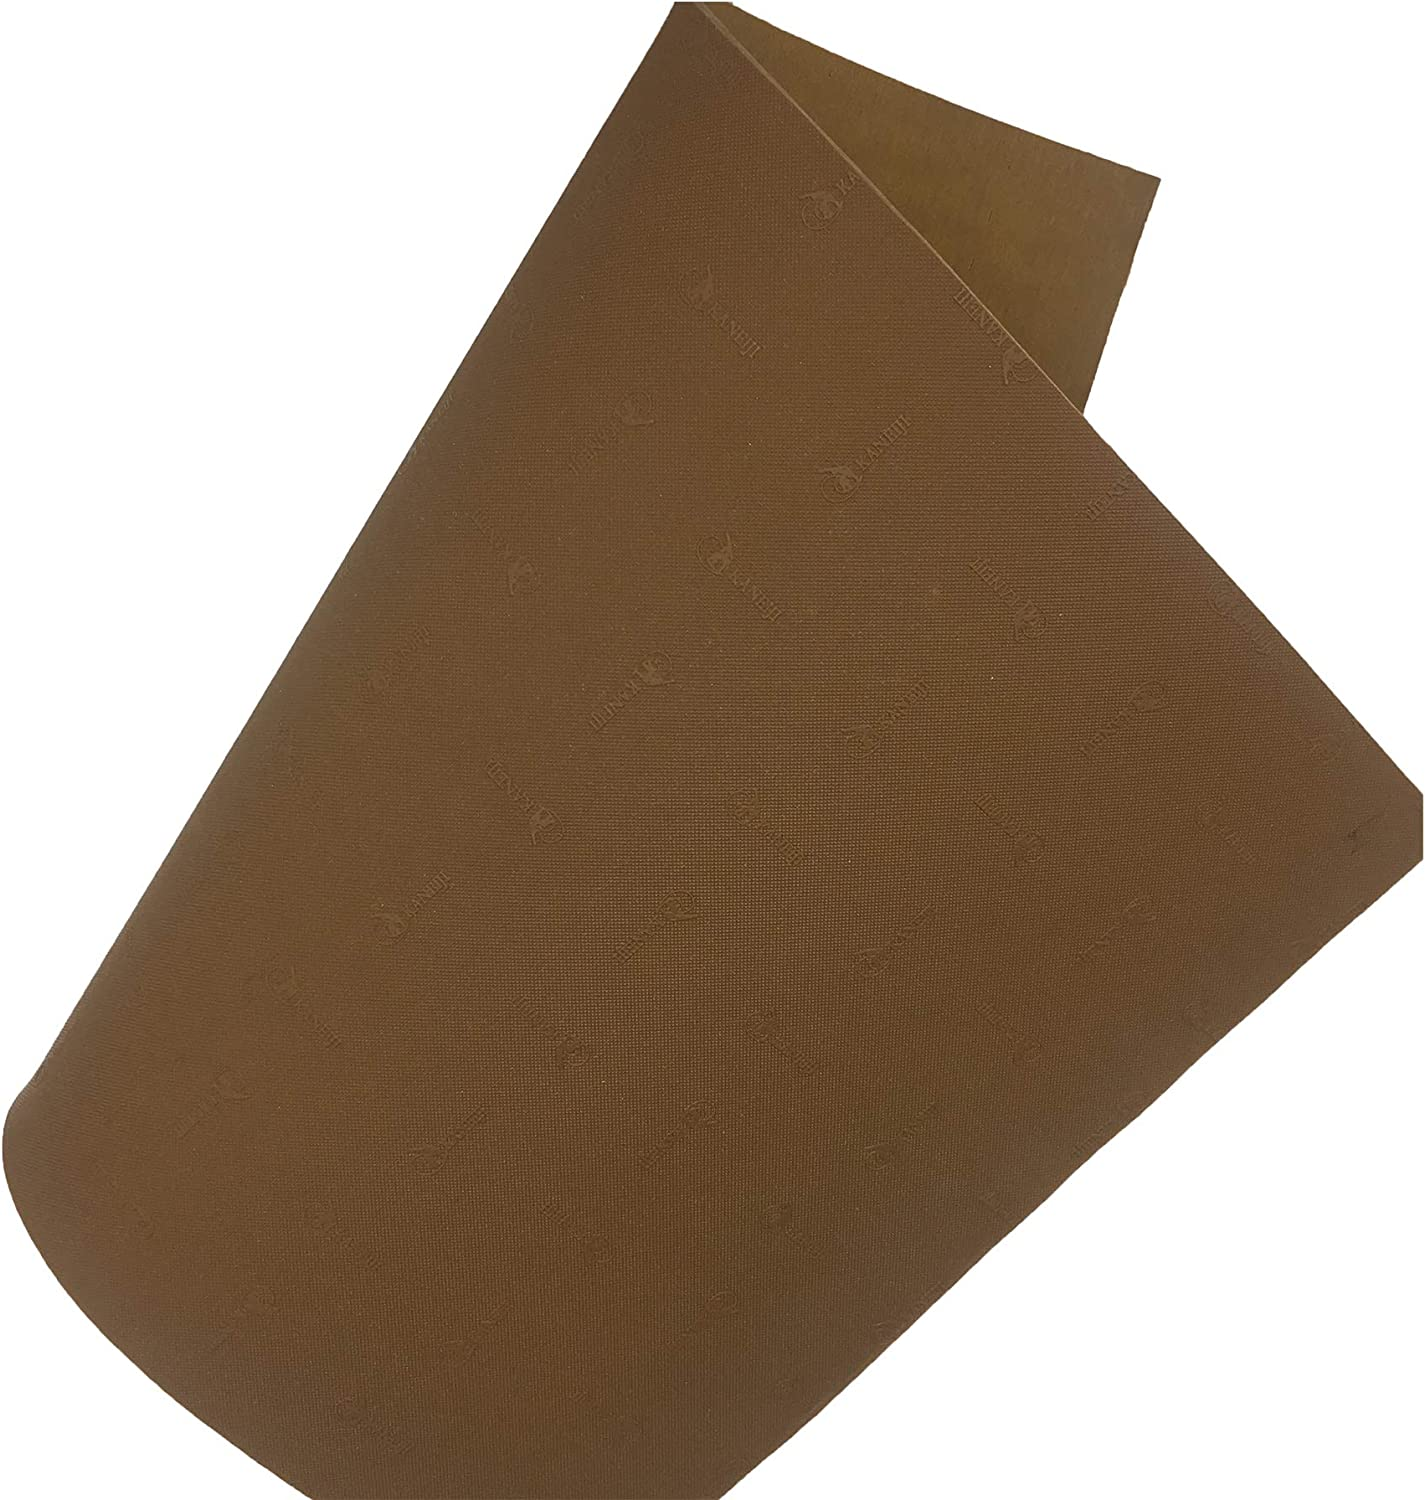 1 Sheet KANEIJI Shoe Repair Rubber Soling Sheet Different Colors and Thickness can Choose Black, 6mm Thickness 57 * 38cm